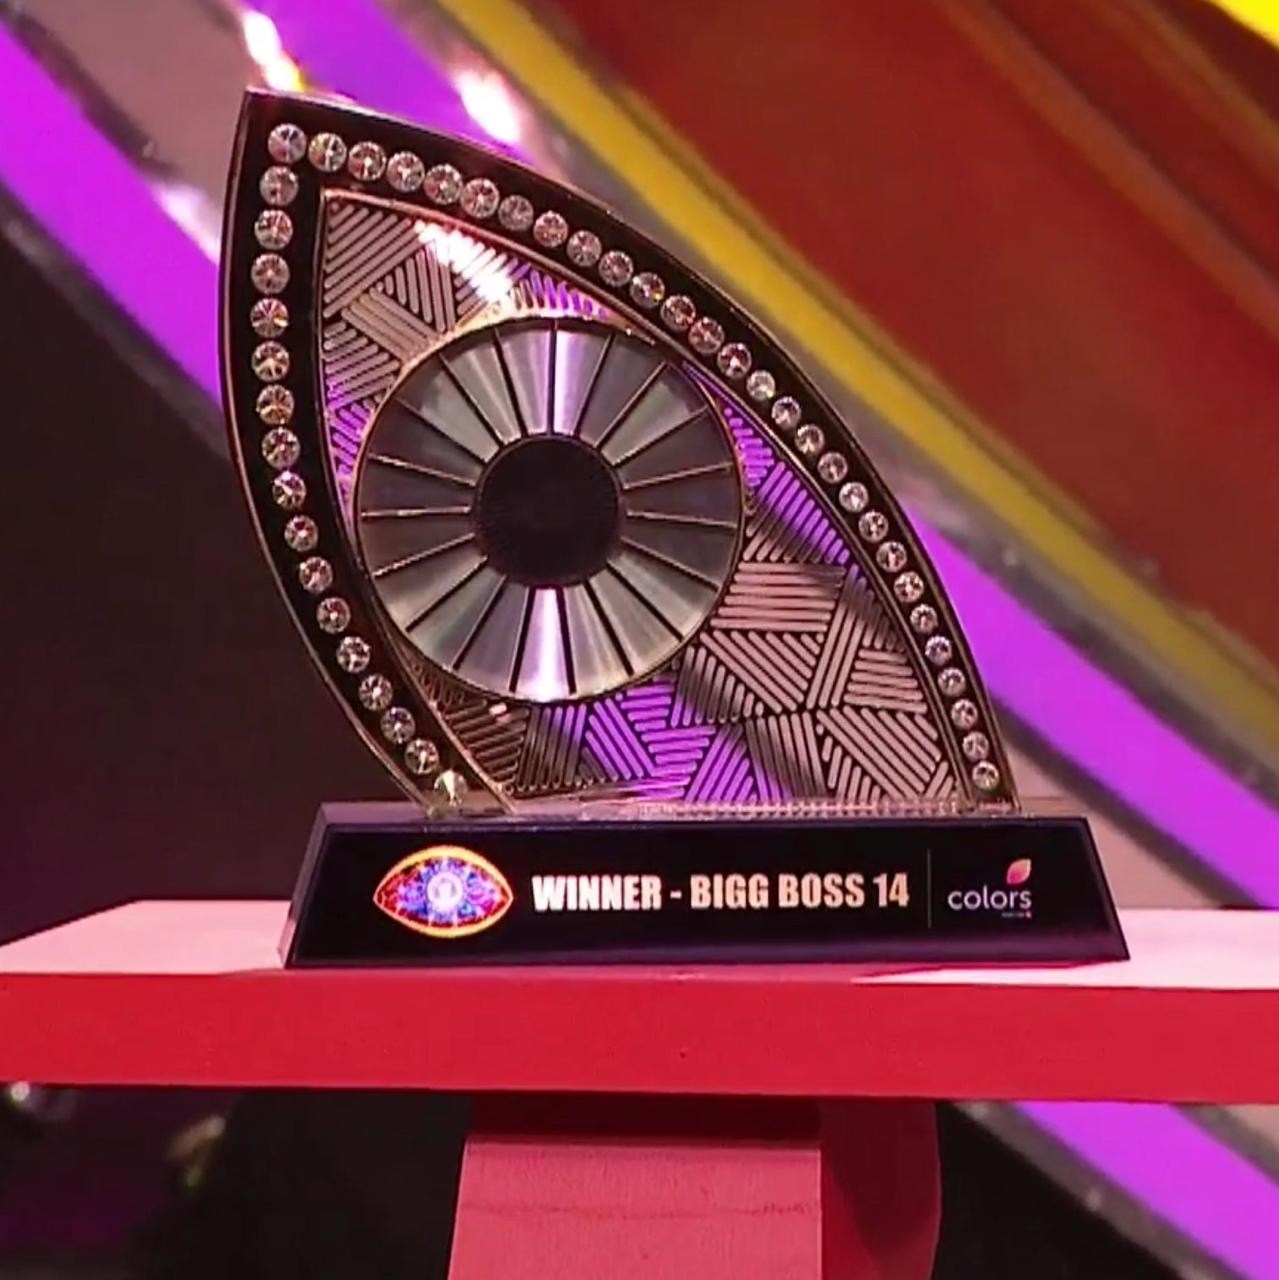 Bigg Boss 14 Winner: Rubina Dilaik reached home with a prize money of 36 lakhs with Bigg Boss trophy